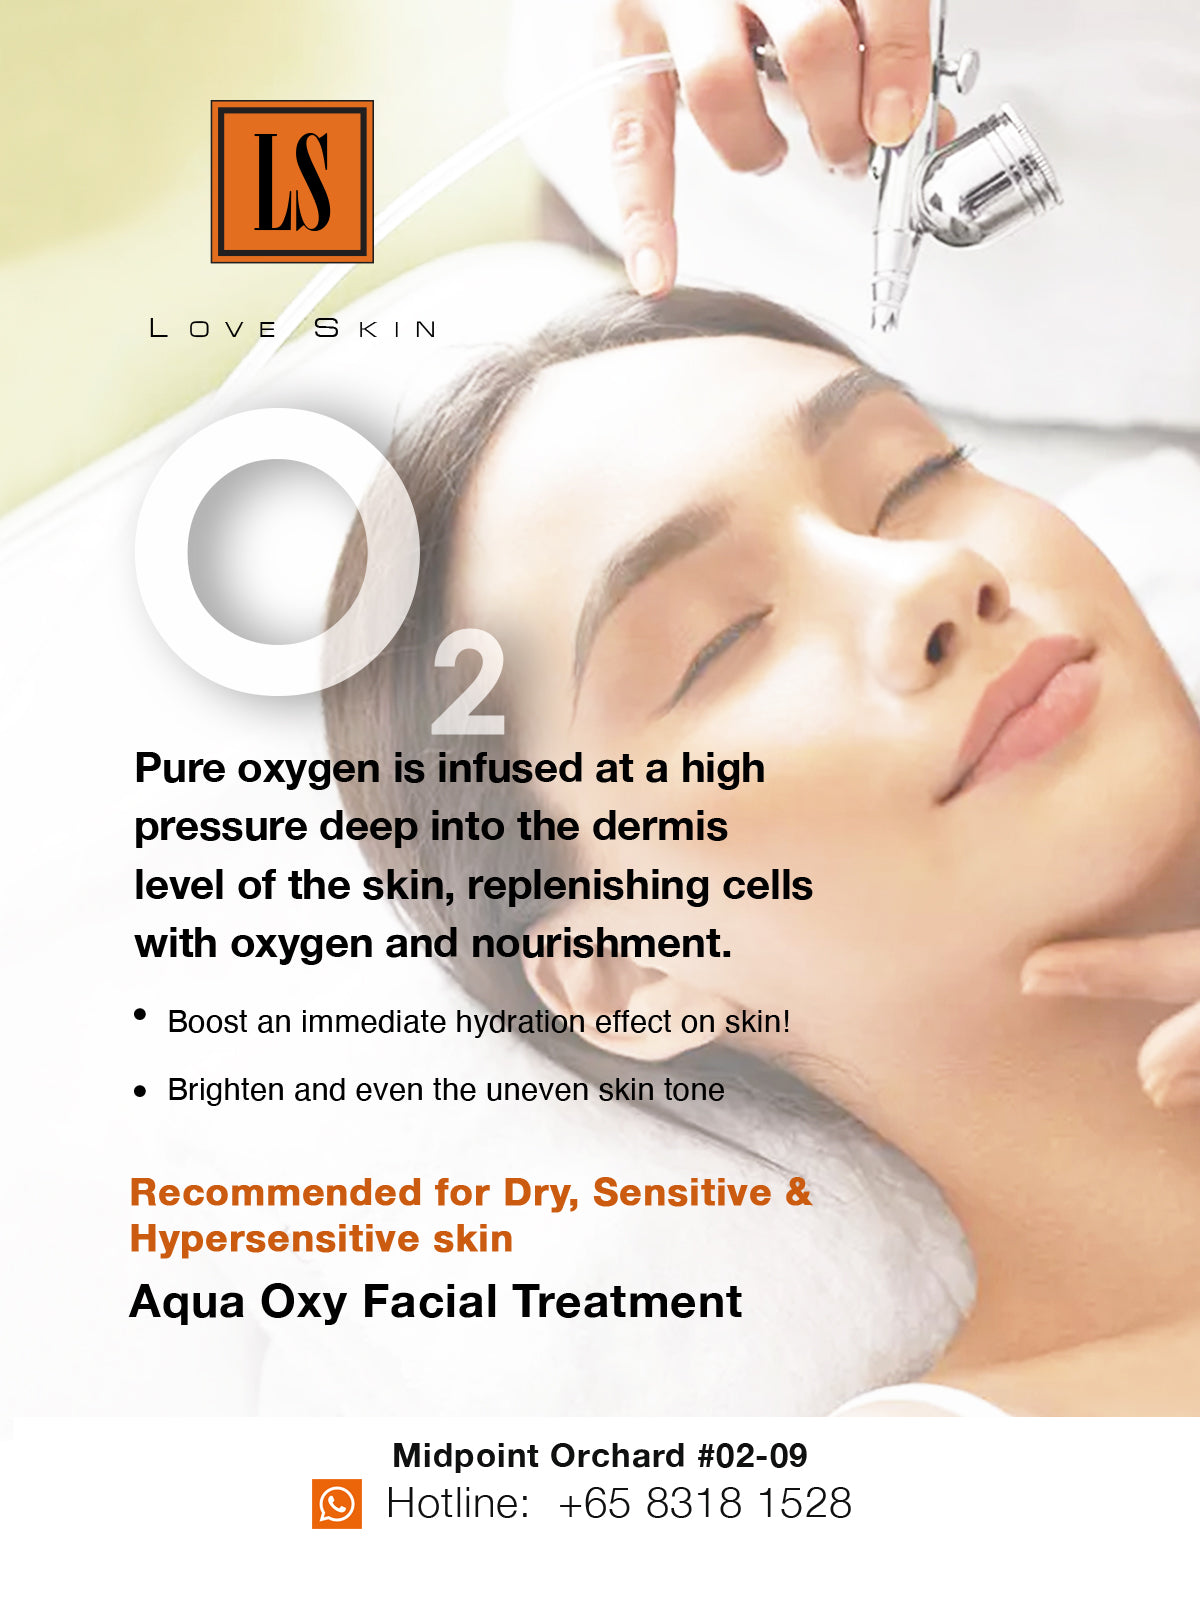 [S190003-60] Aqua Oxy Facial Treatment - Even for MOST Sensitive Skin!